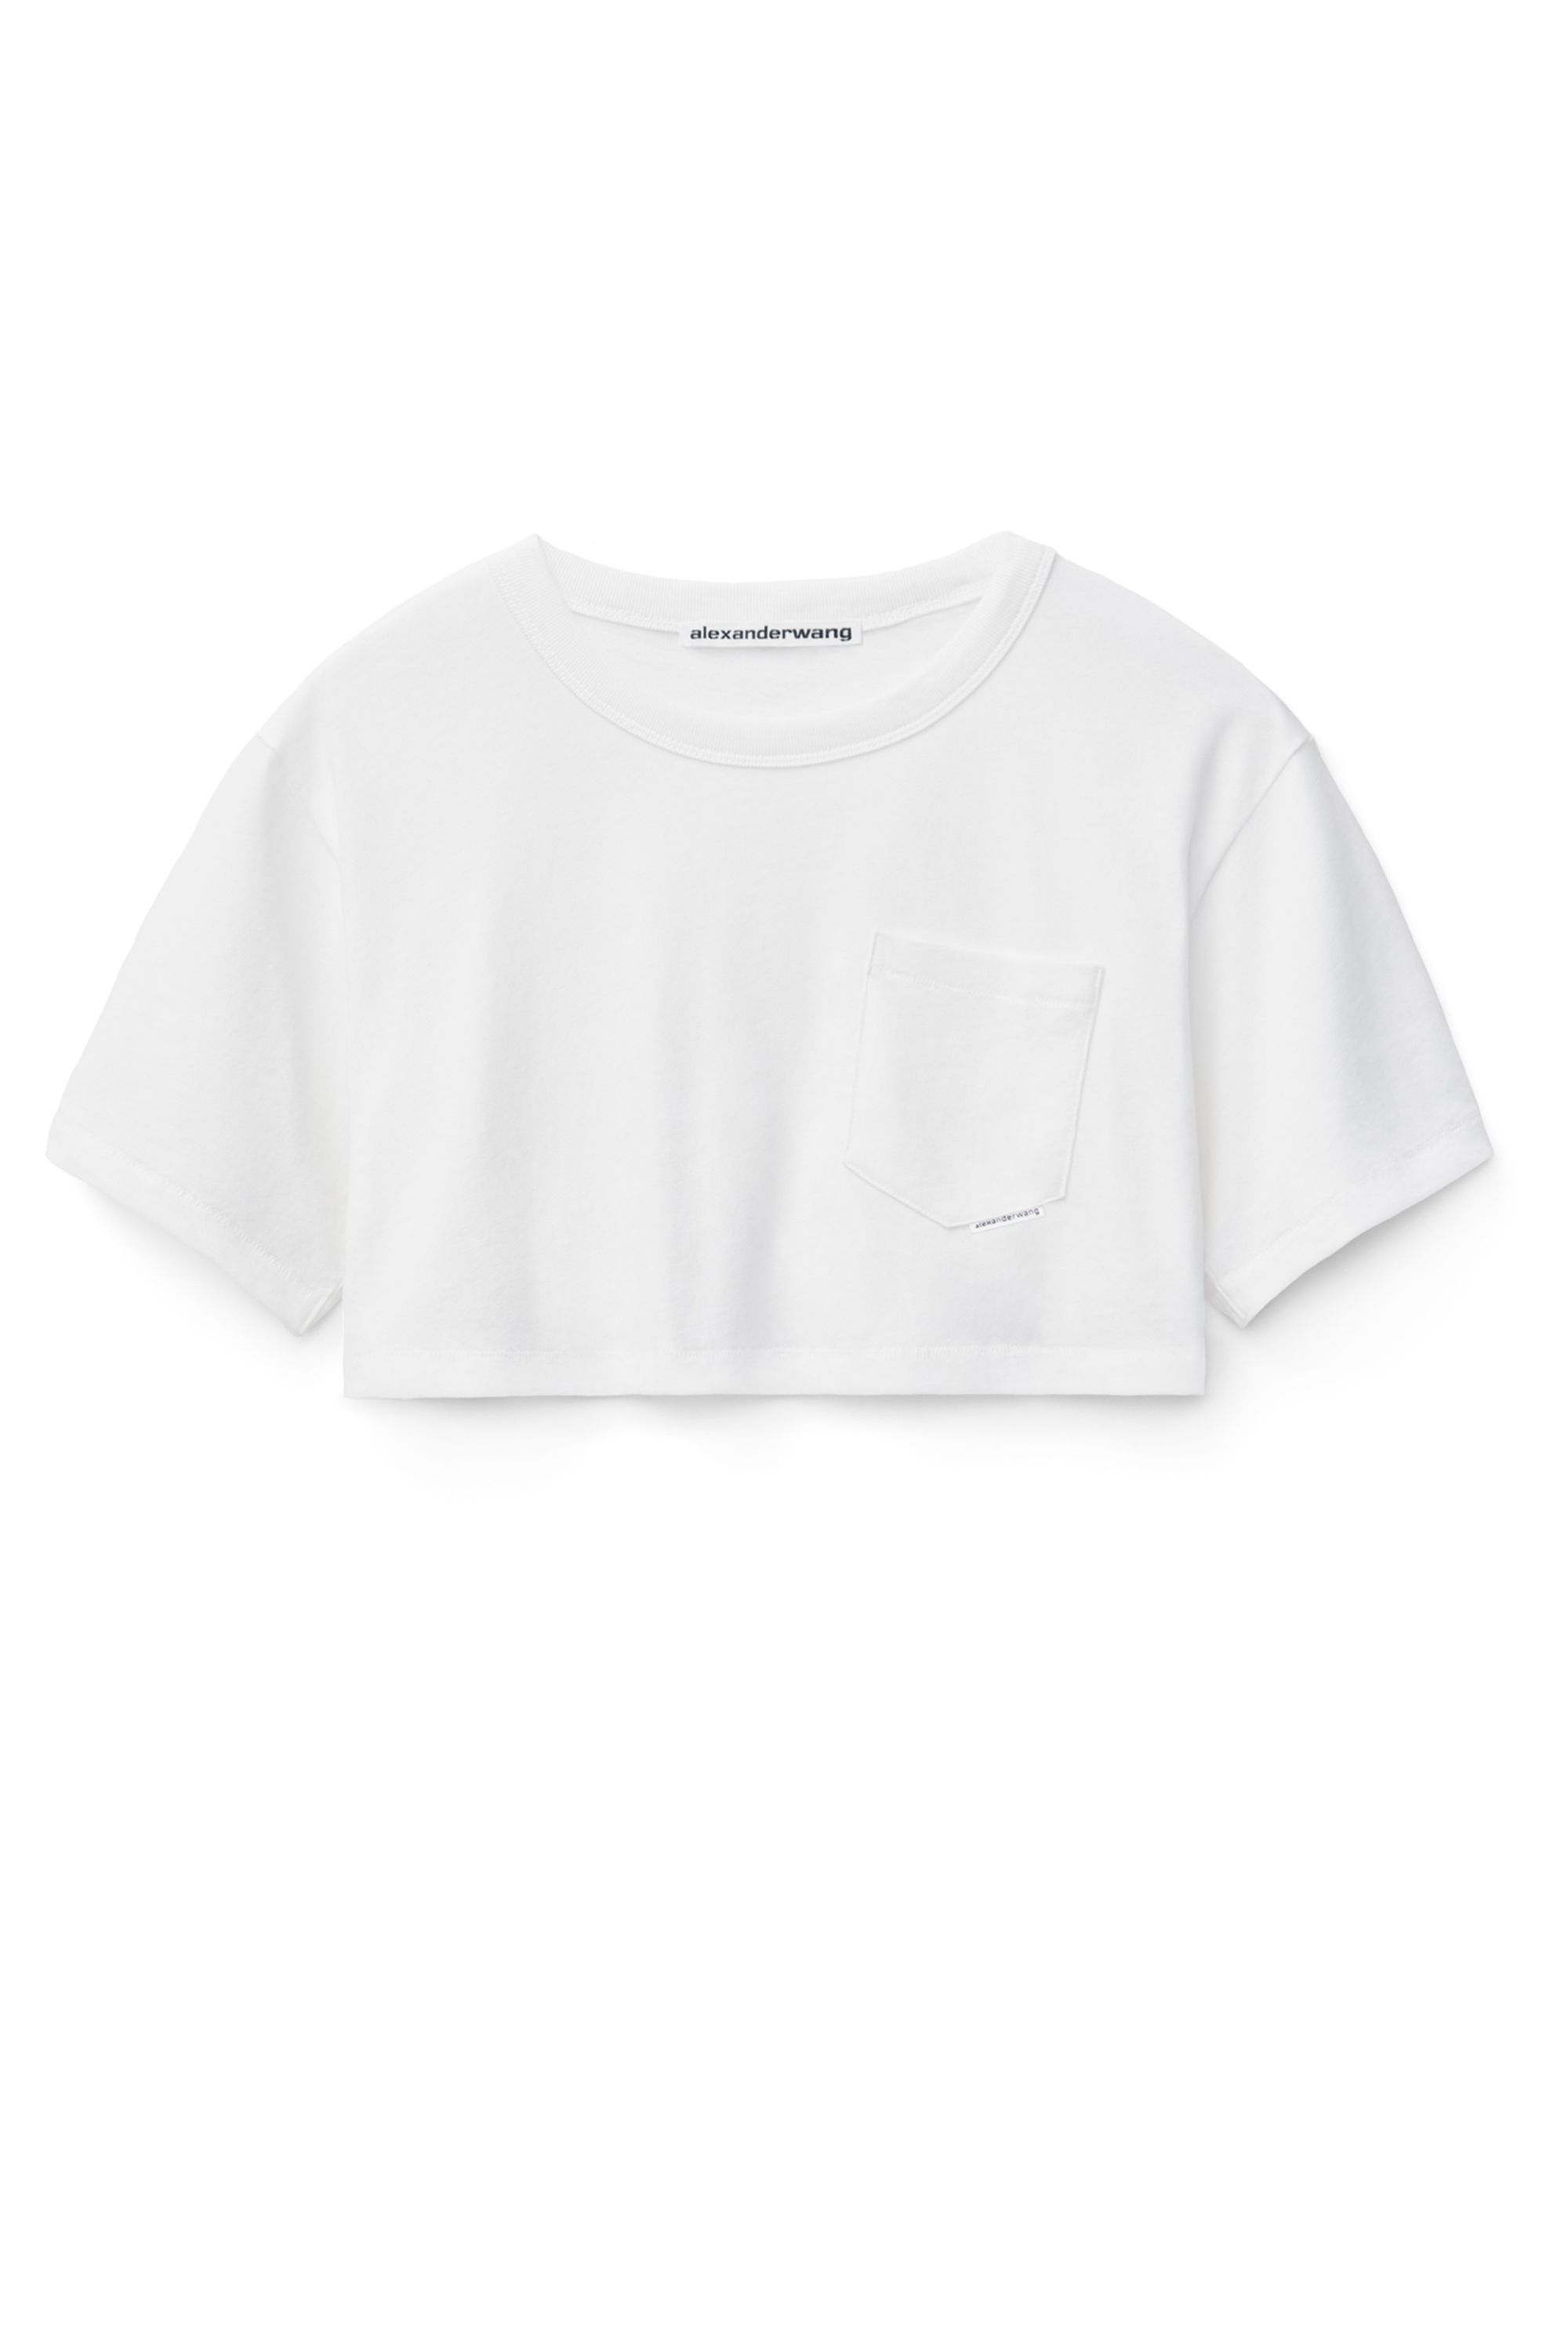 9fc34c4011ca 10 Best White T Shirts 2019 - Perfect White Tee Shirts for Summer